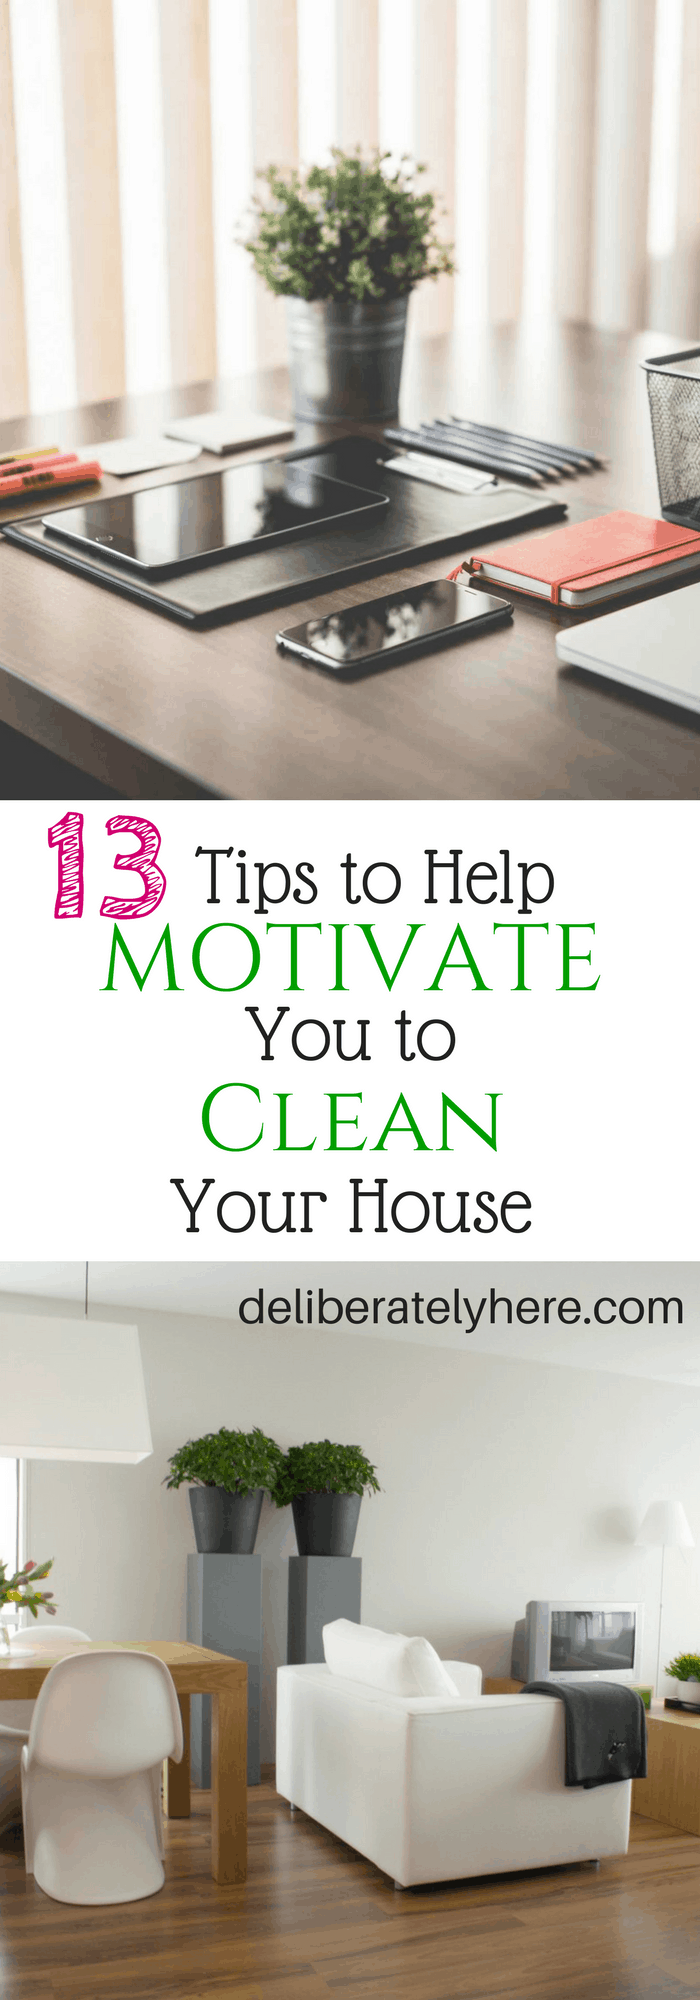 13 Tips to Help Motivate You to Clean Your House